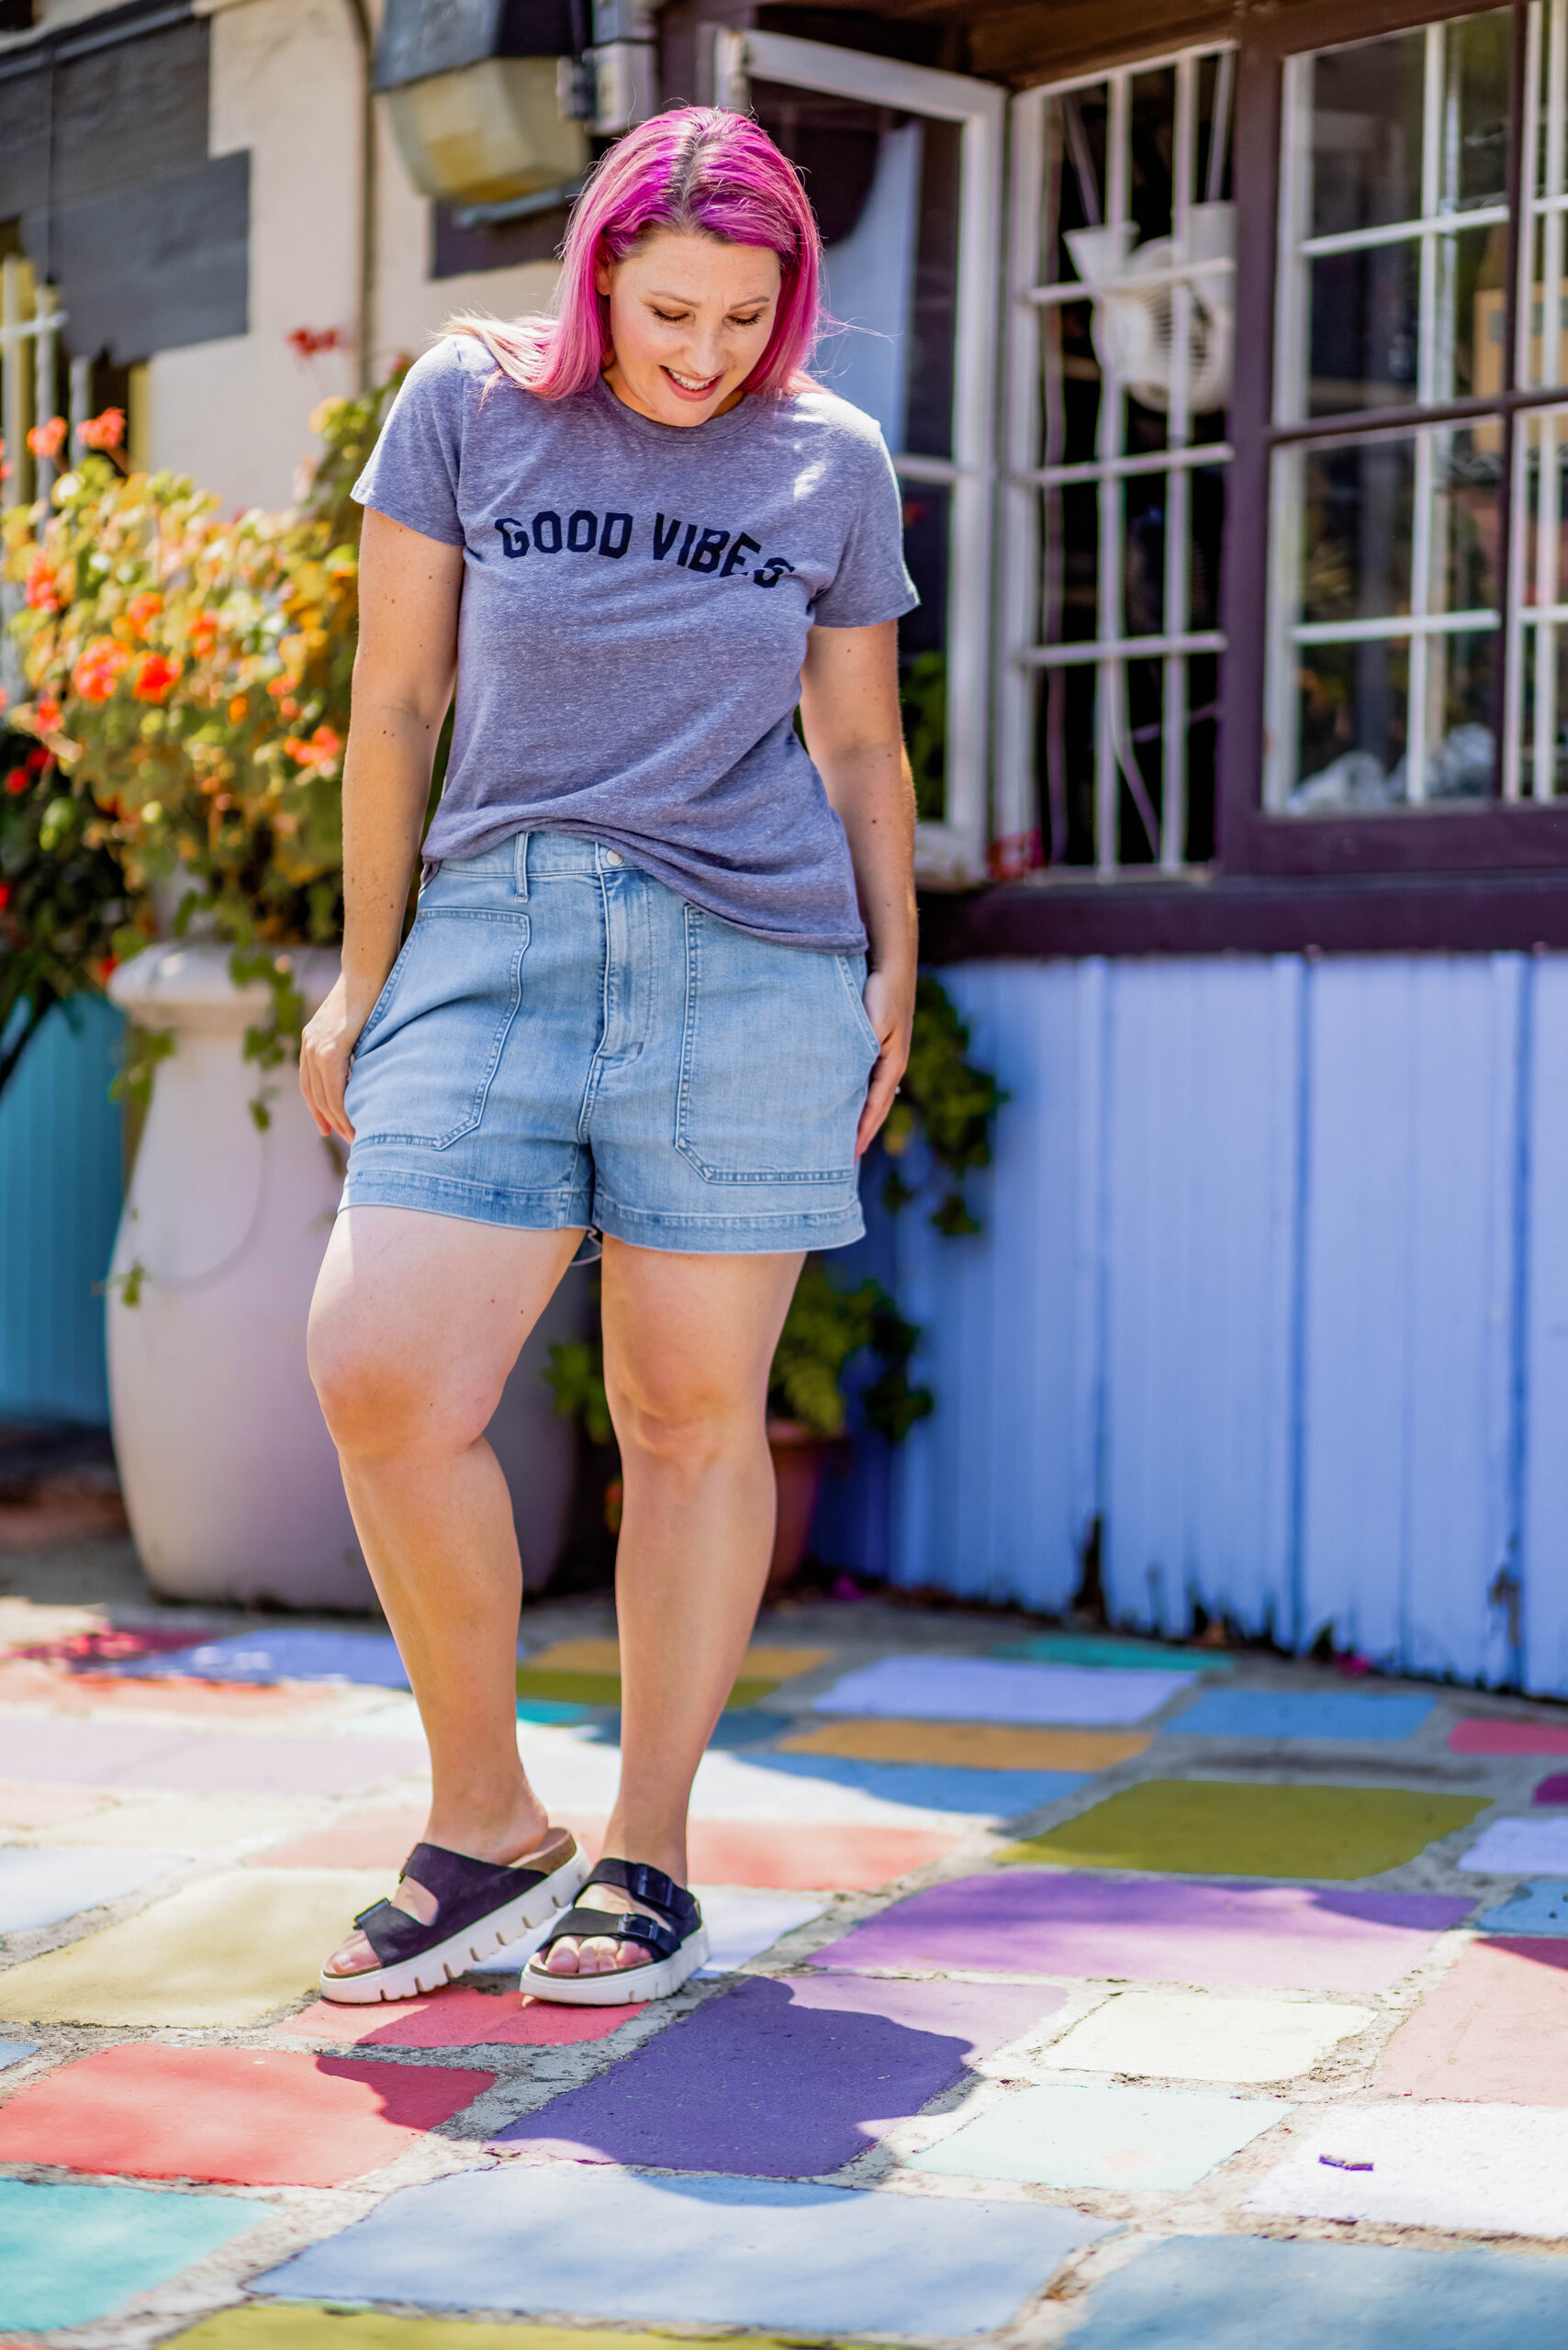 Having trouble finding great denim shorts? These are the best jean shorts for thick thighs!